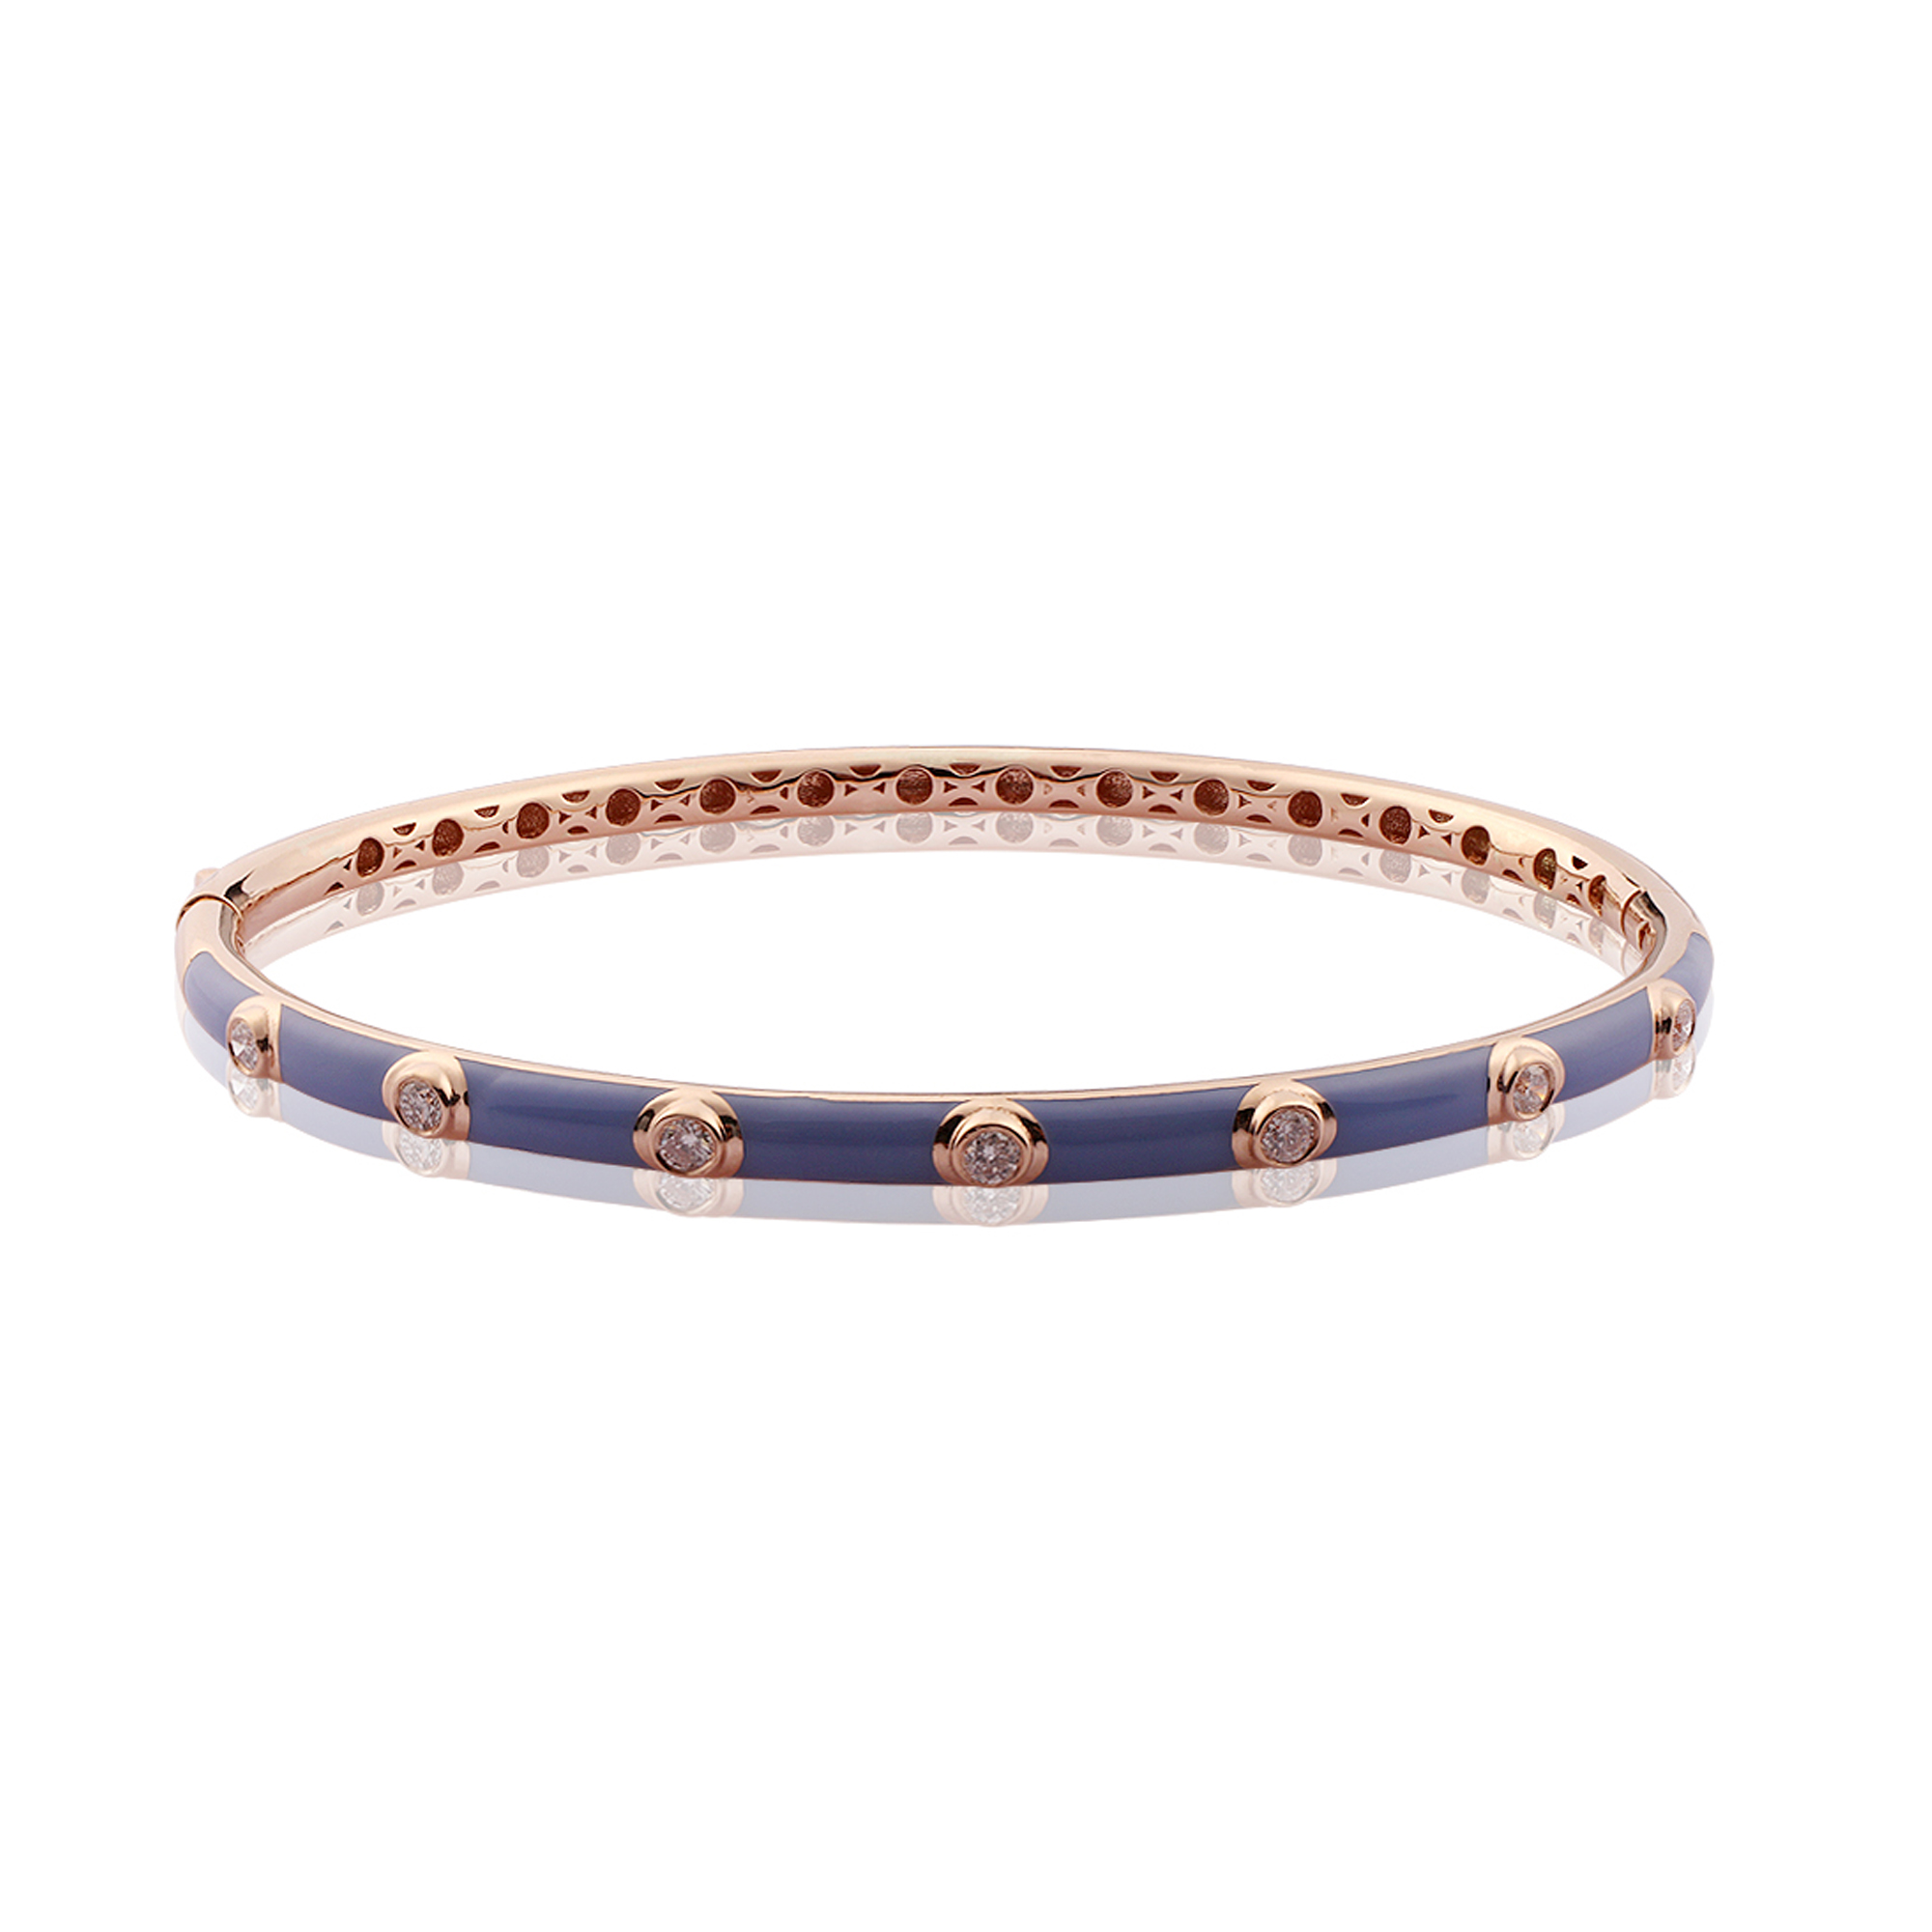 Cloisonné Collection Bracelet MN107b-29